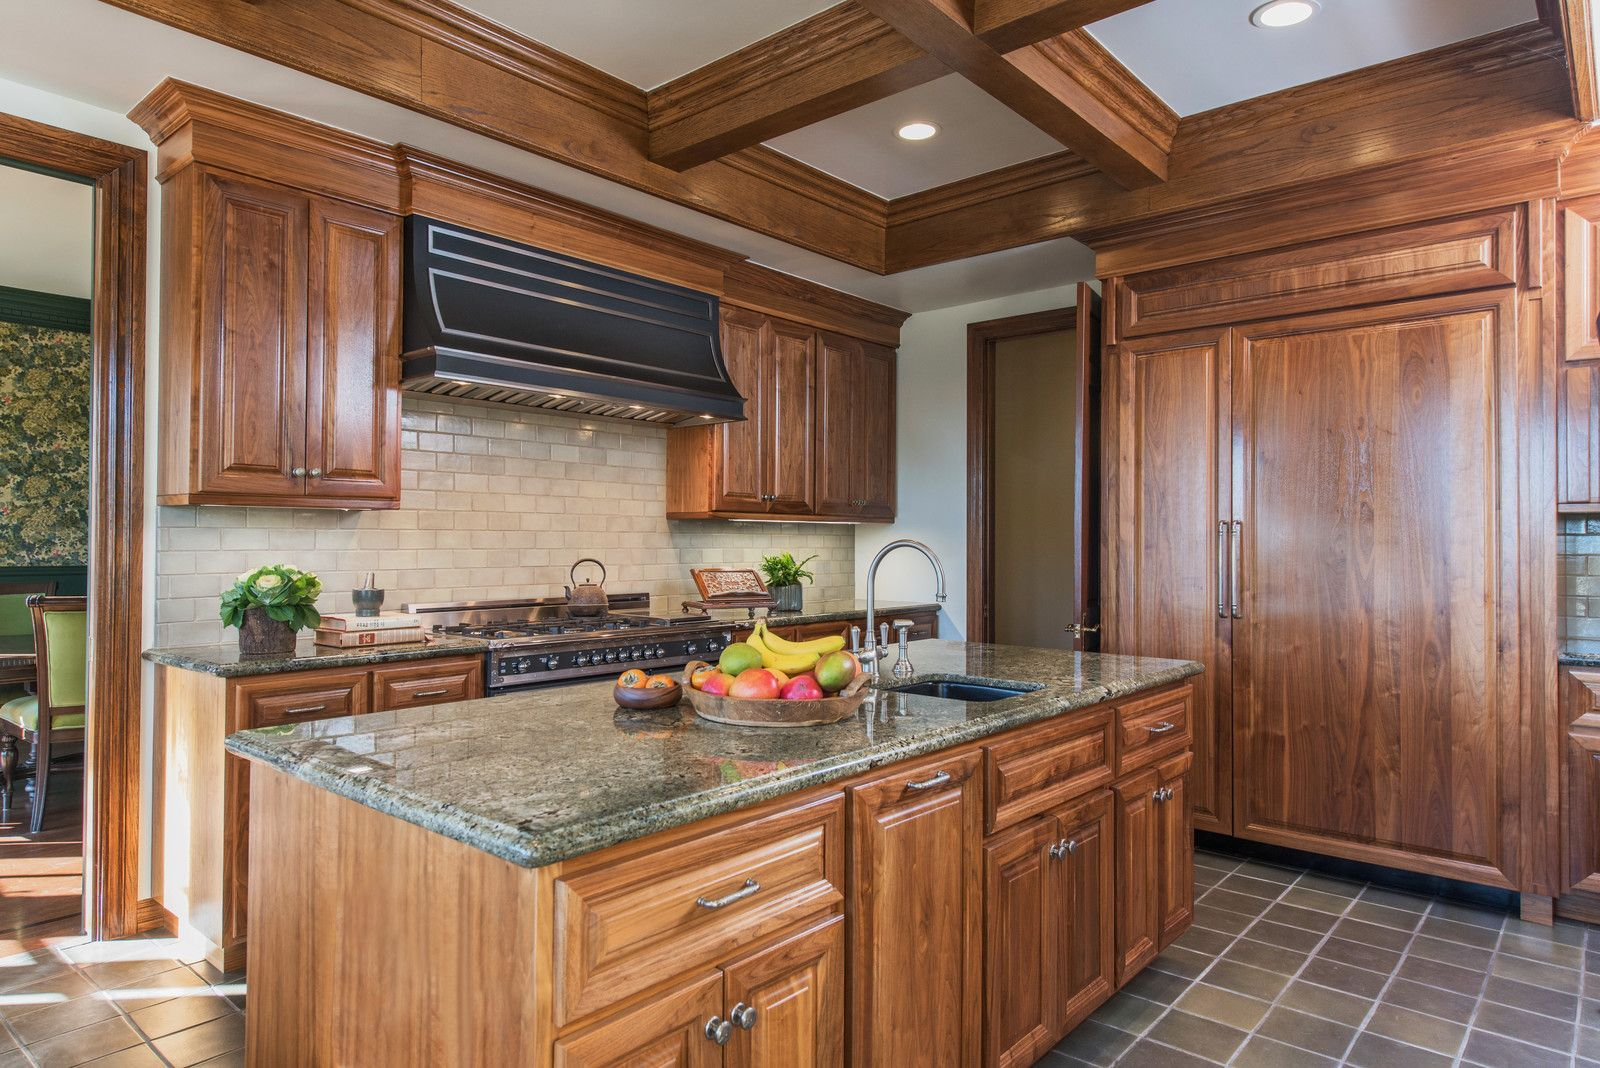 Enclosed Kitchen Large Traditional Galley Porcelain Floor Enclosed Kitchen Idea In Los Ange Walnut Kitchen Cabinets Walnut Kitchen Contemporary Kitchen Sinks